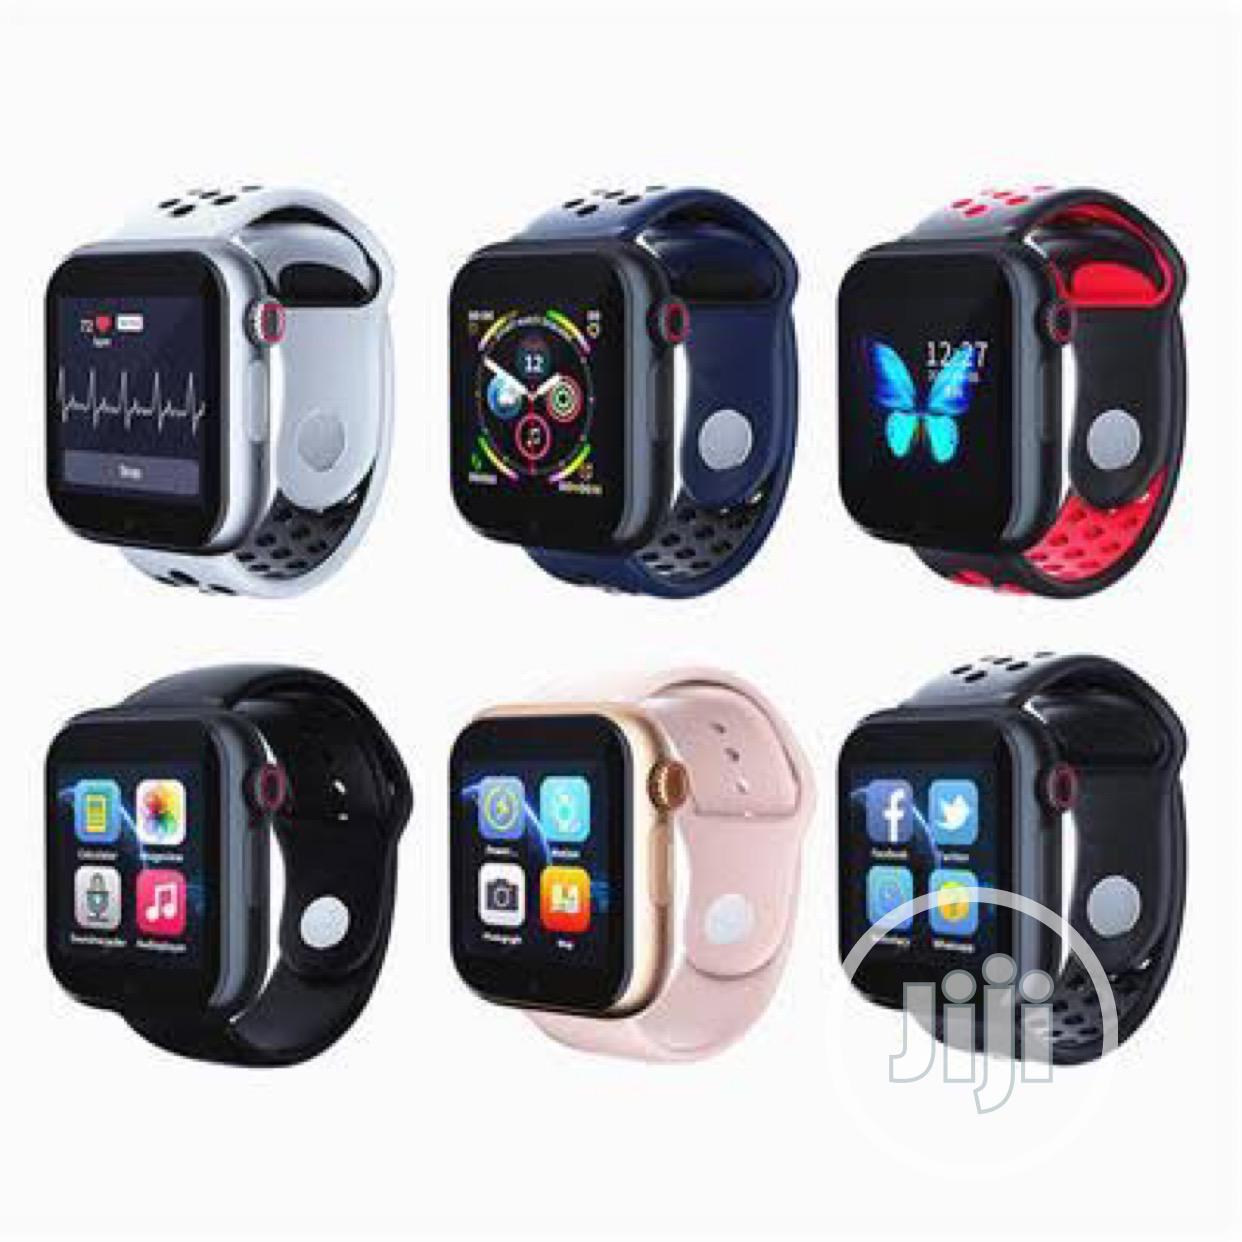 Z6s Smart Watch Heartbeat Monitor | Smart Watches & Trackers for sale in Ifako-Ijaiye, Lagos State, Nigeria